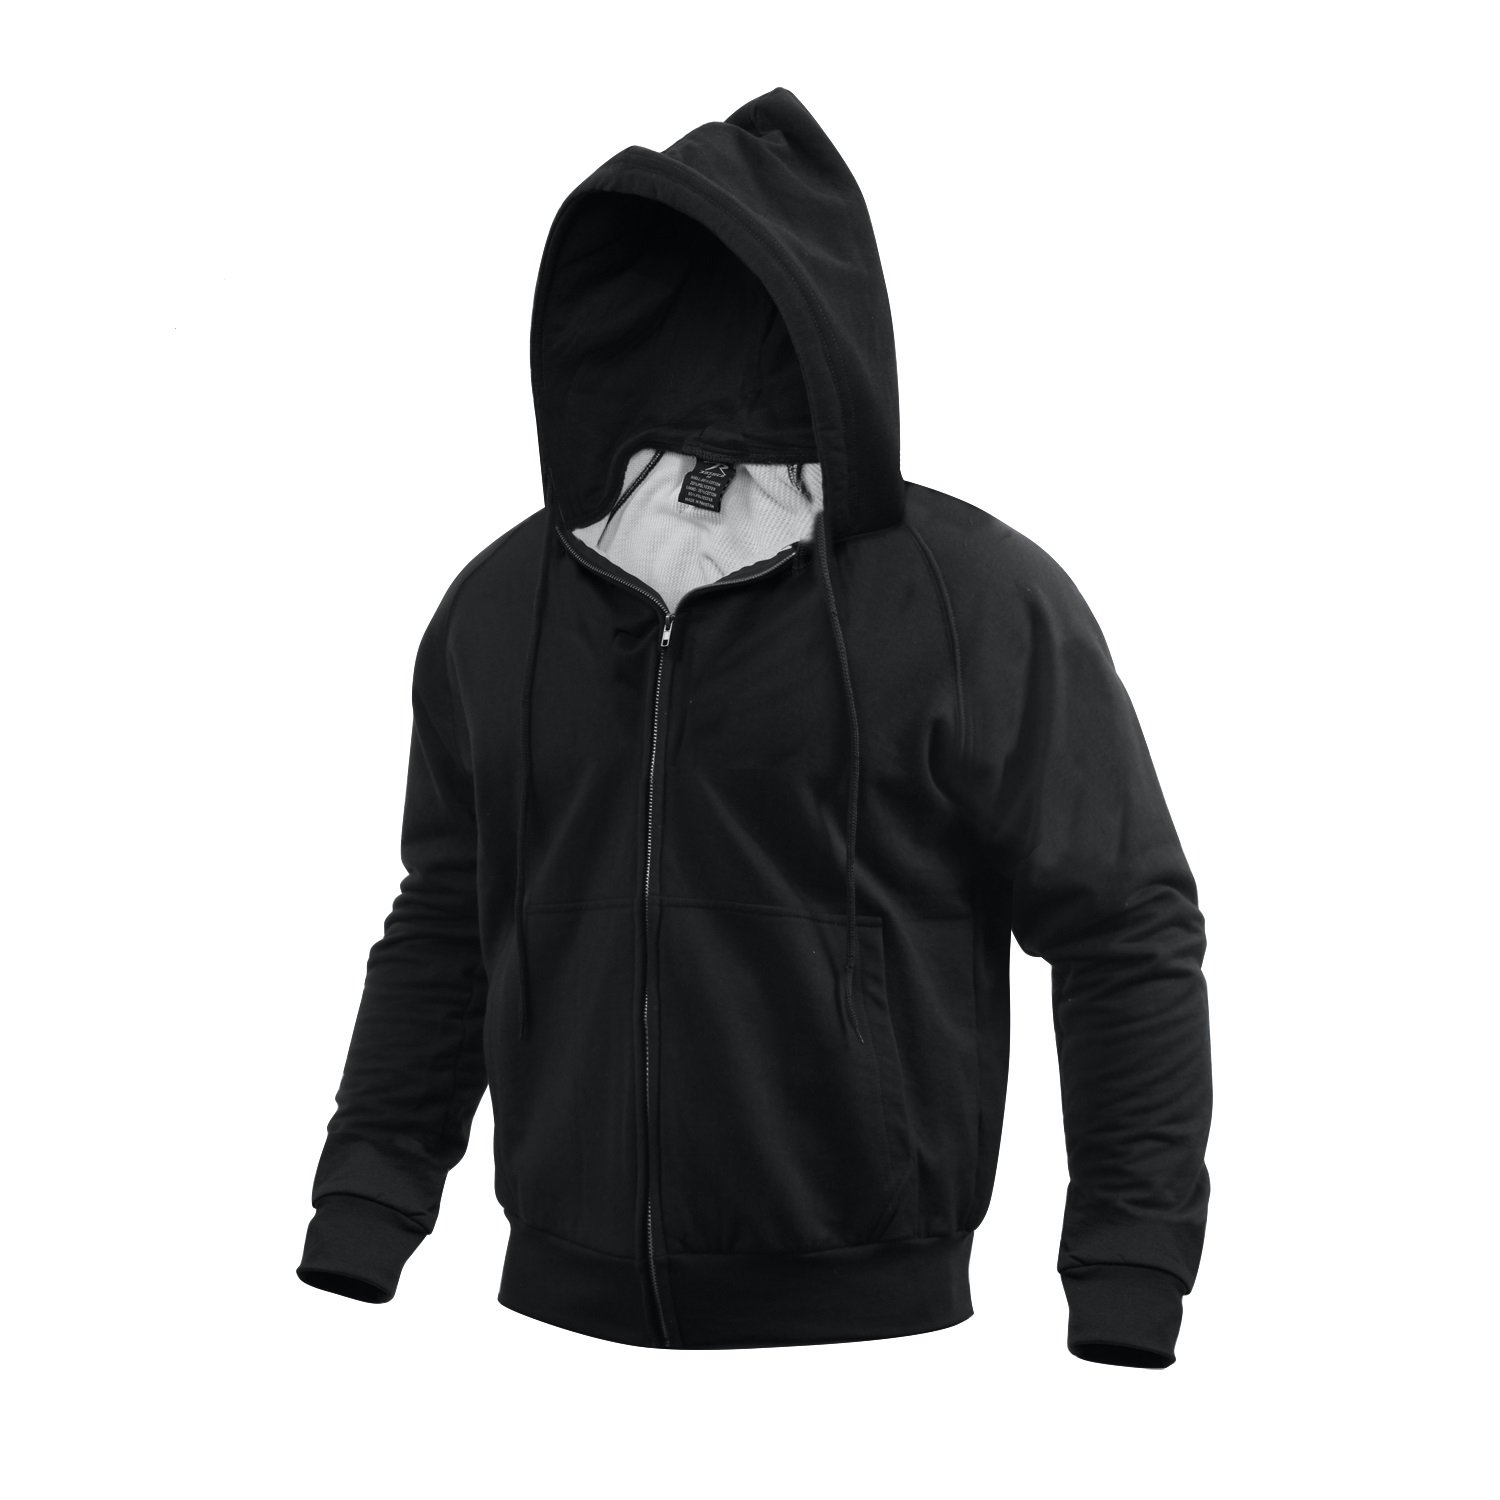 Amazon.com  Black Thermal Lined Zipper Hooded Sweatshirt - Large  Sweaters   Clothing 58a63b0f913